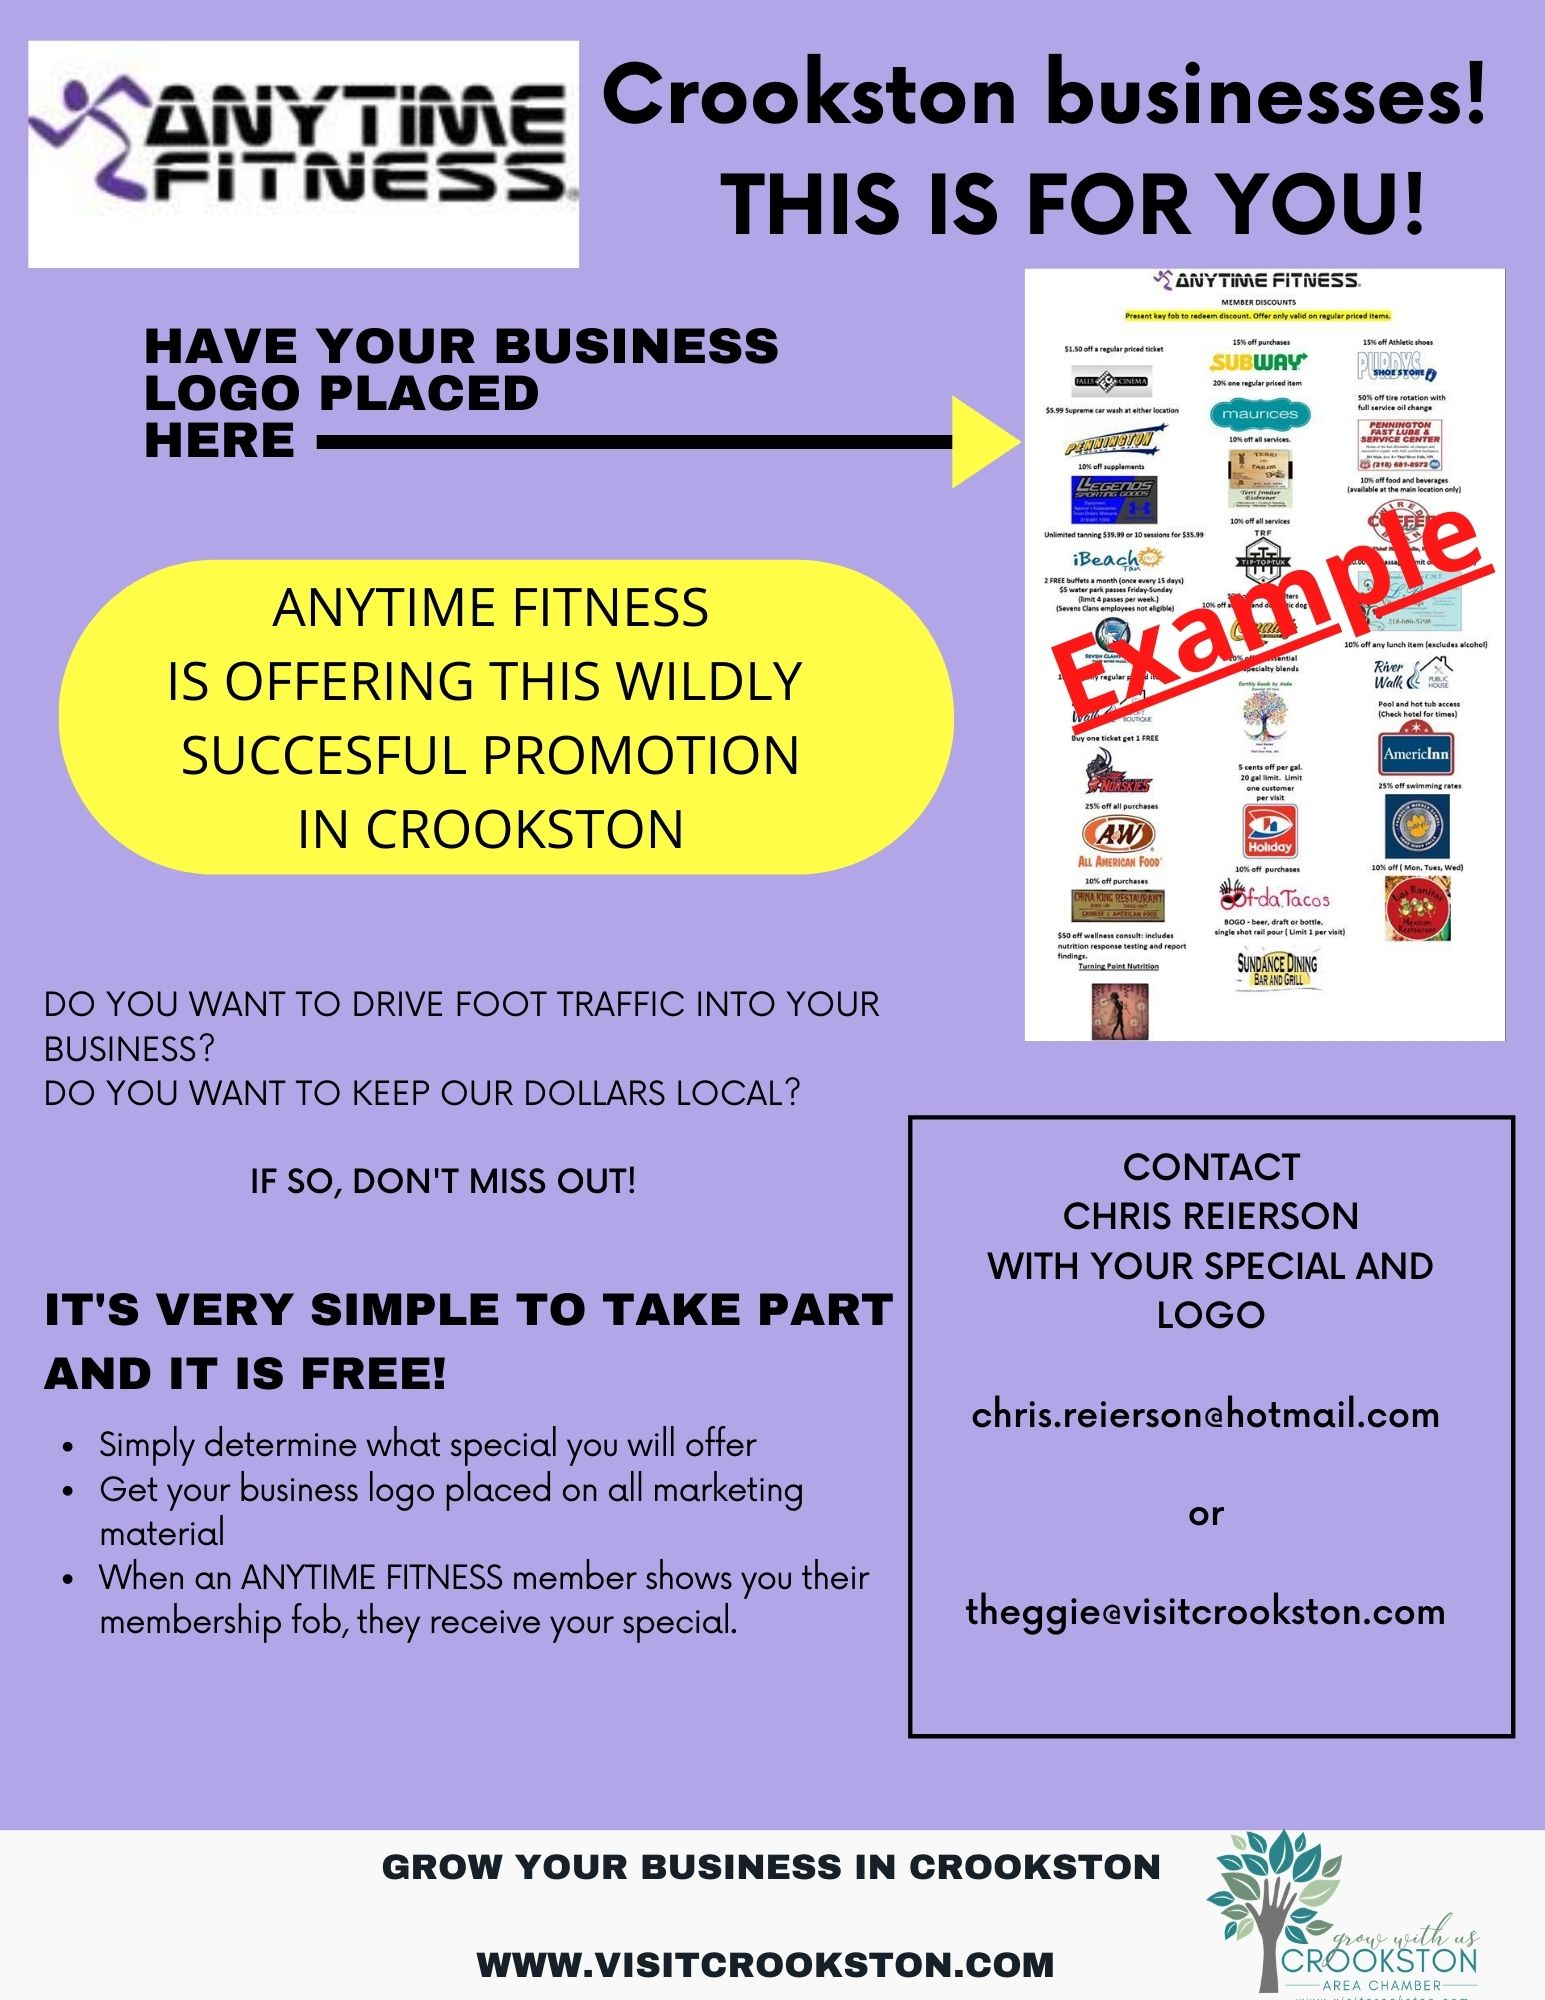 Updated-Crookston-Anytime-Fitness-Flyer.jpg